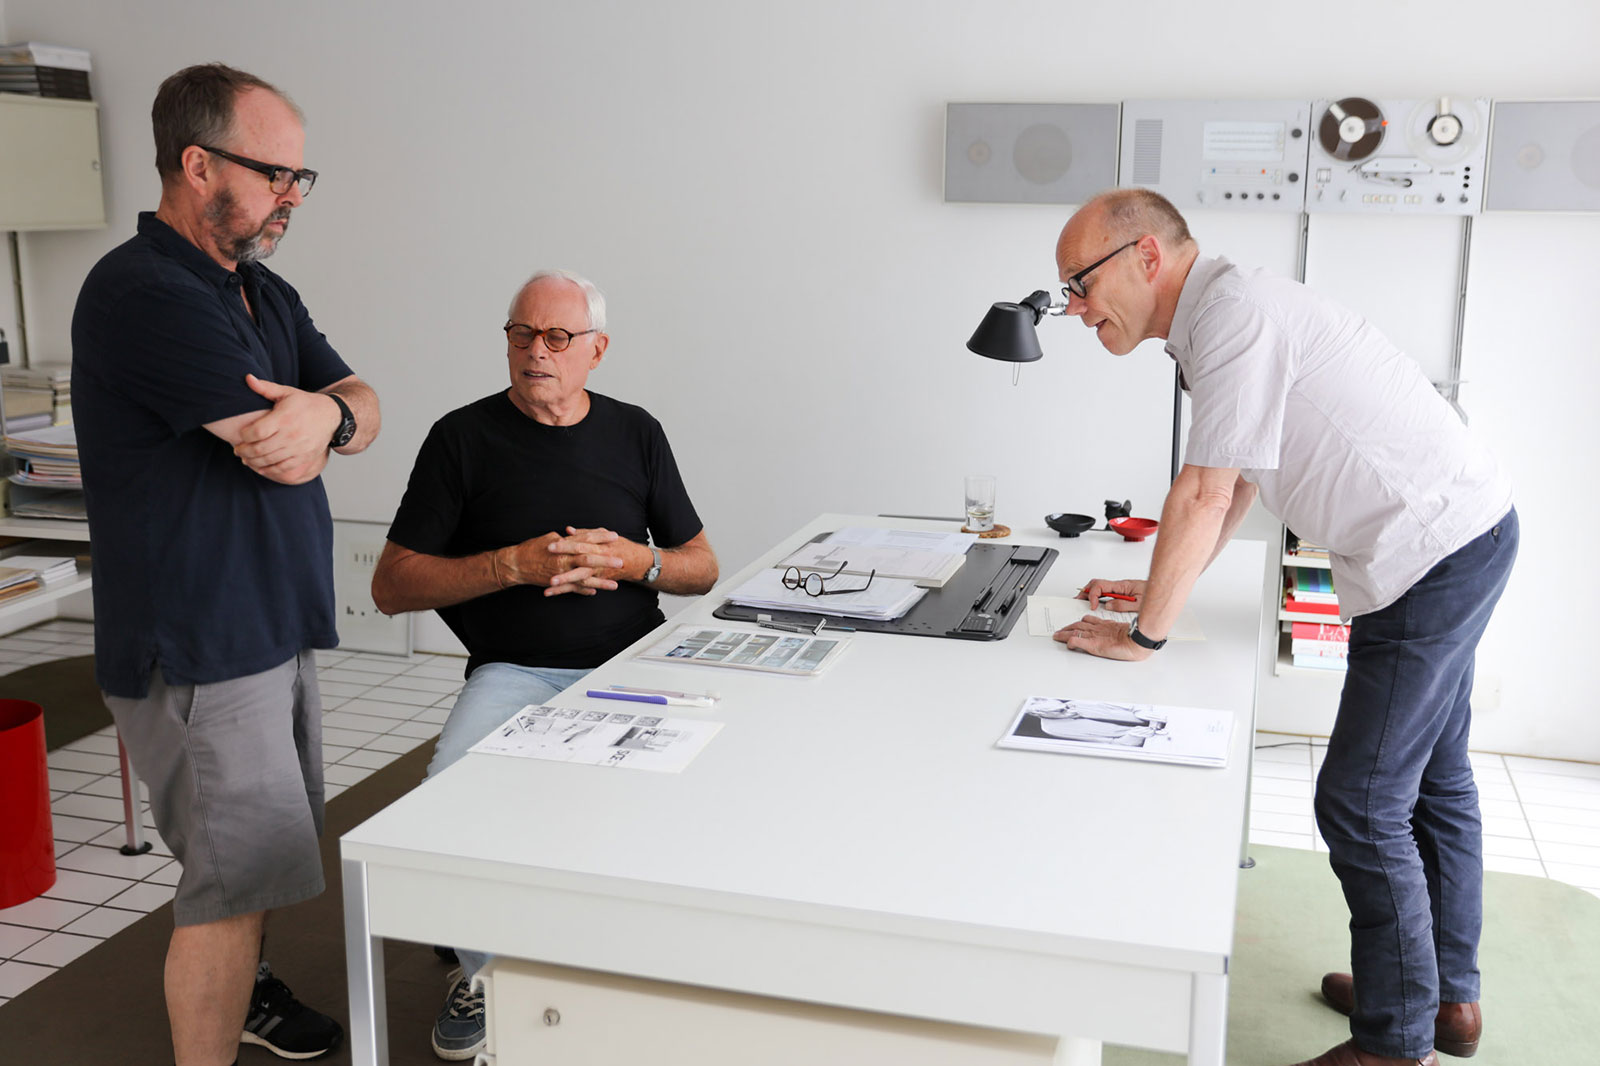 Gary Hustwit discusses his Dieter Rams documentary 'Rams'